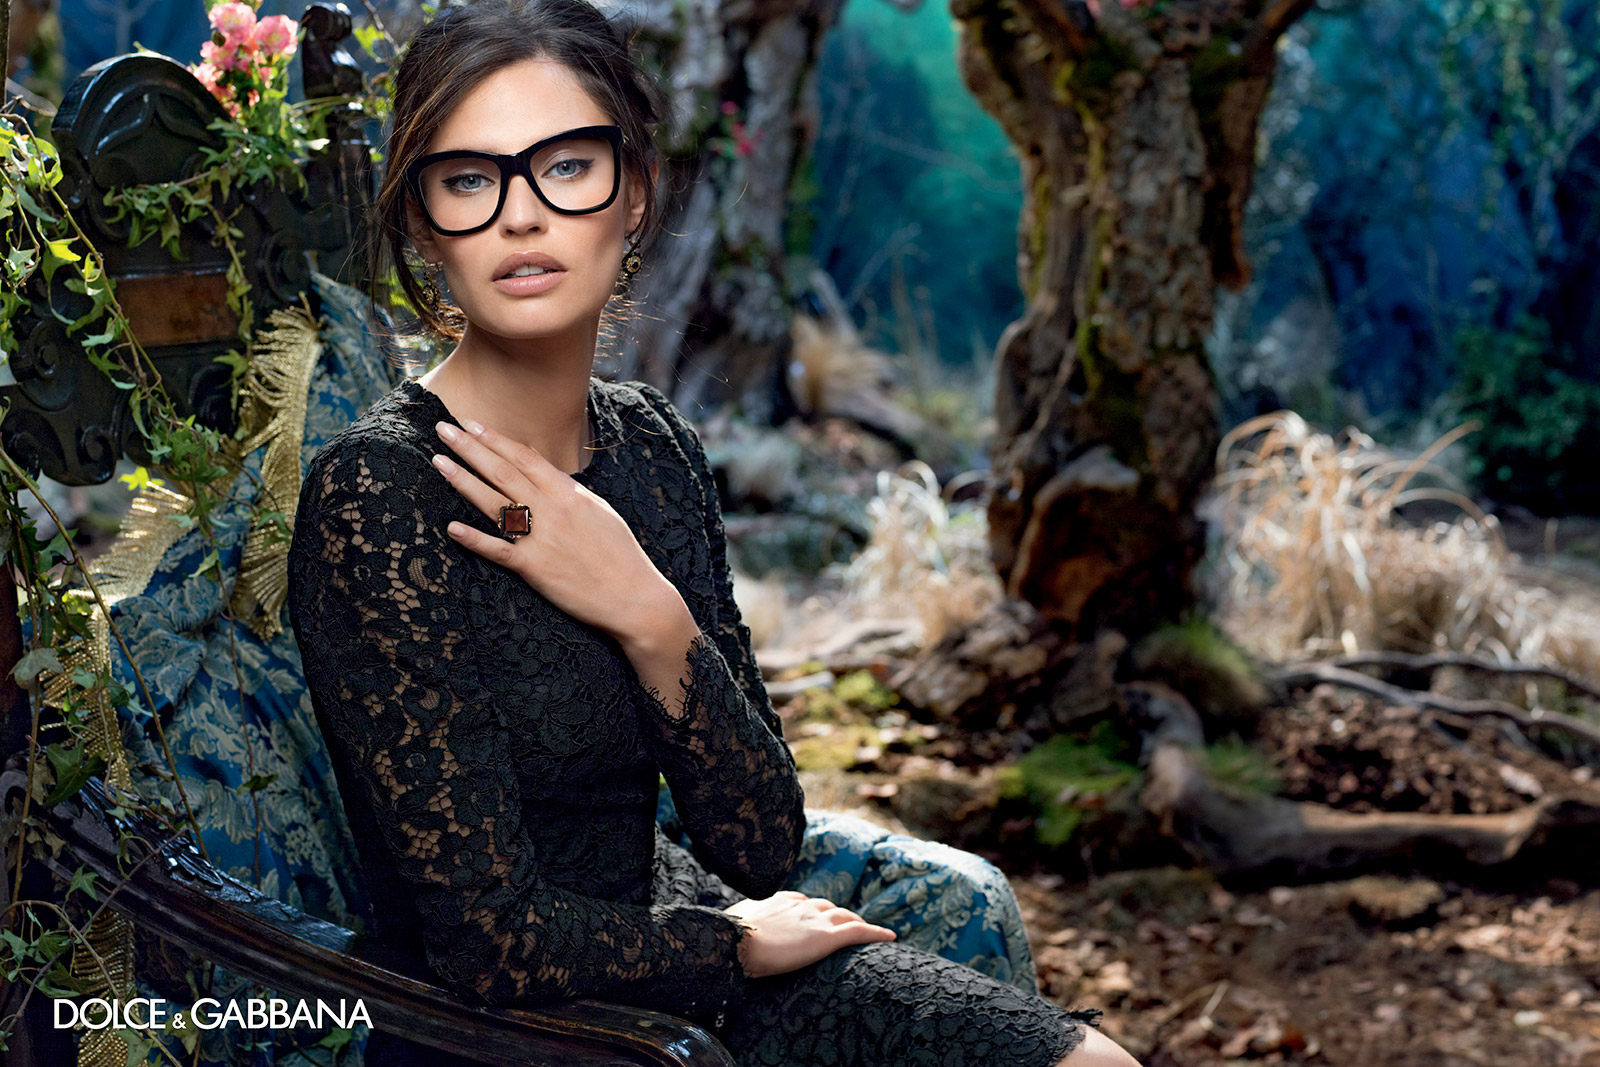 dolce-gabbana-adv-optical-campaign-winter-2015-women-011